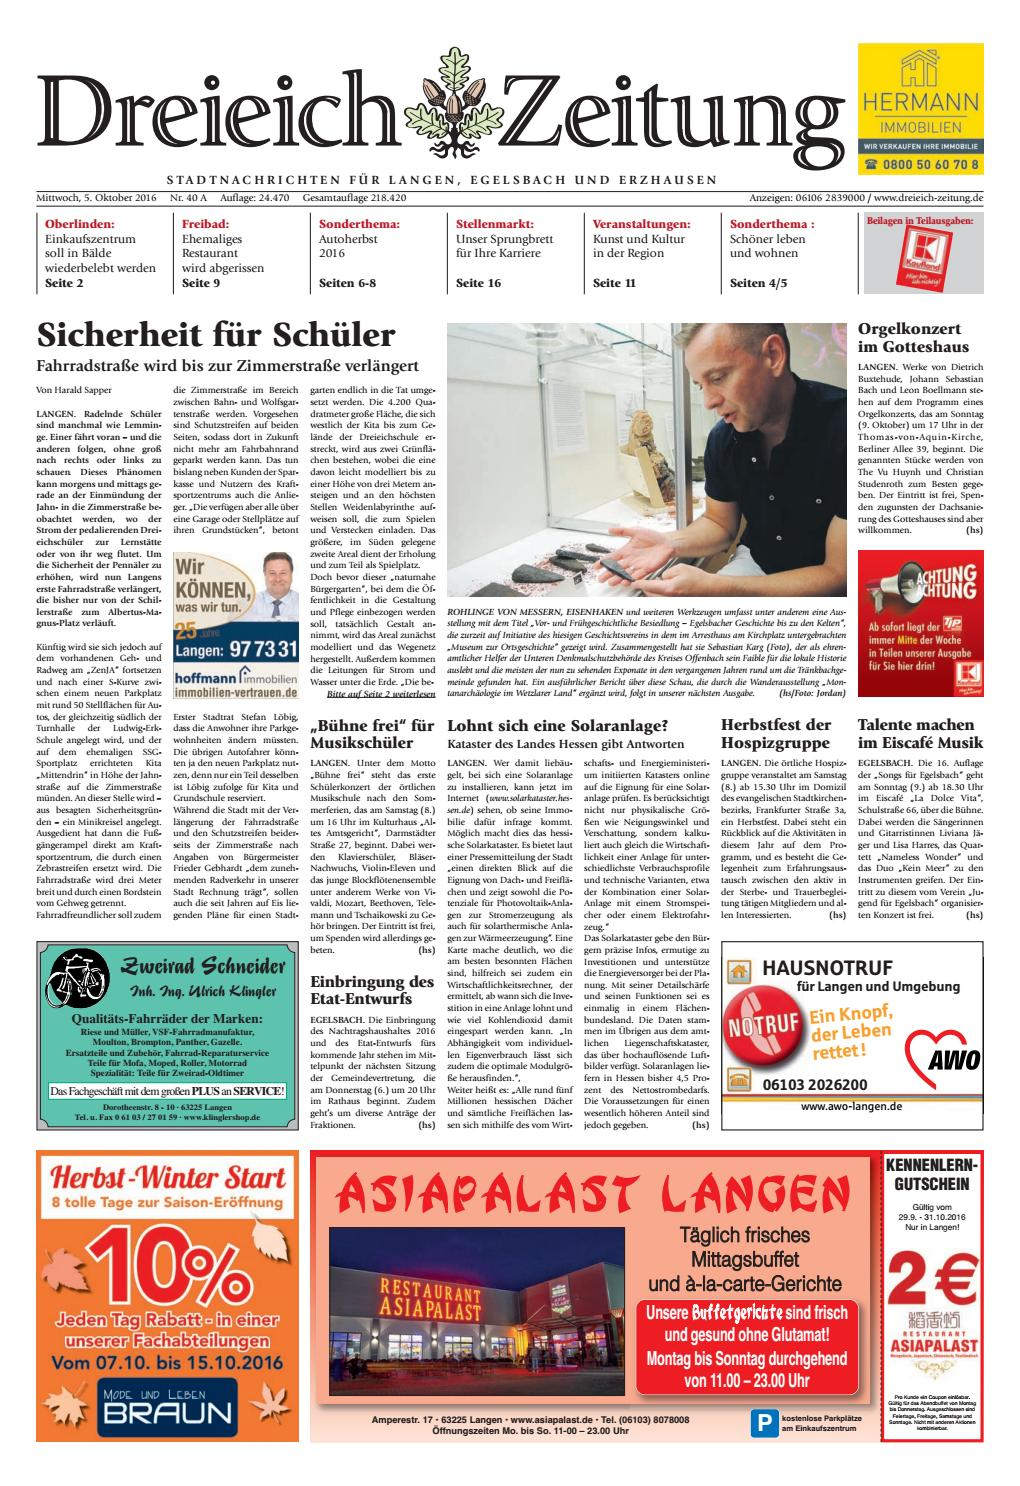 Dz Online 040 16 A By Dreieich Zeitung Offenbach Journal Issuu